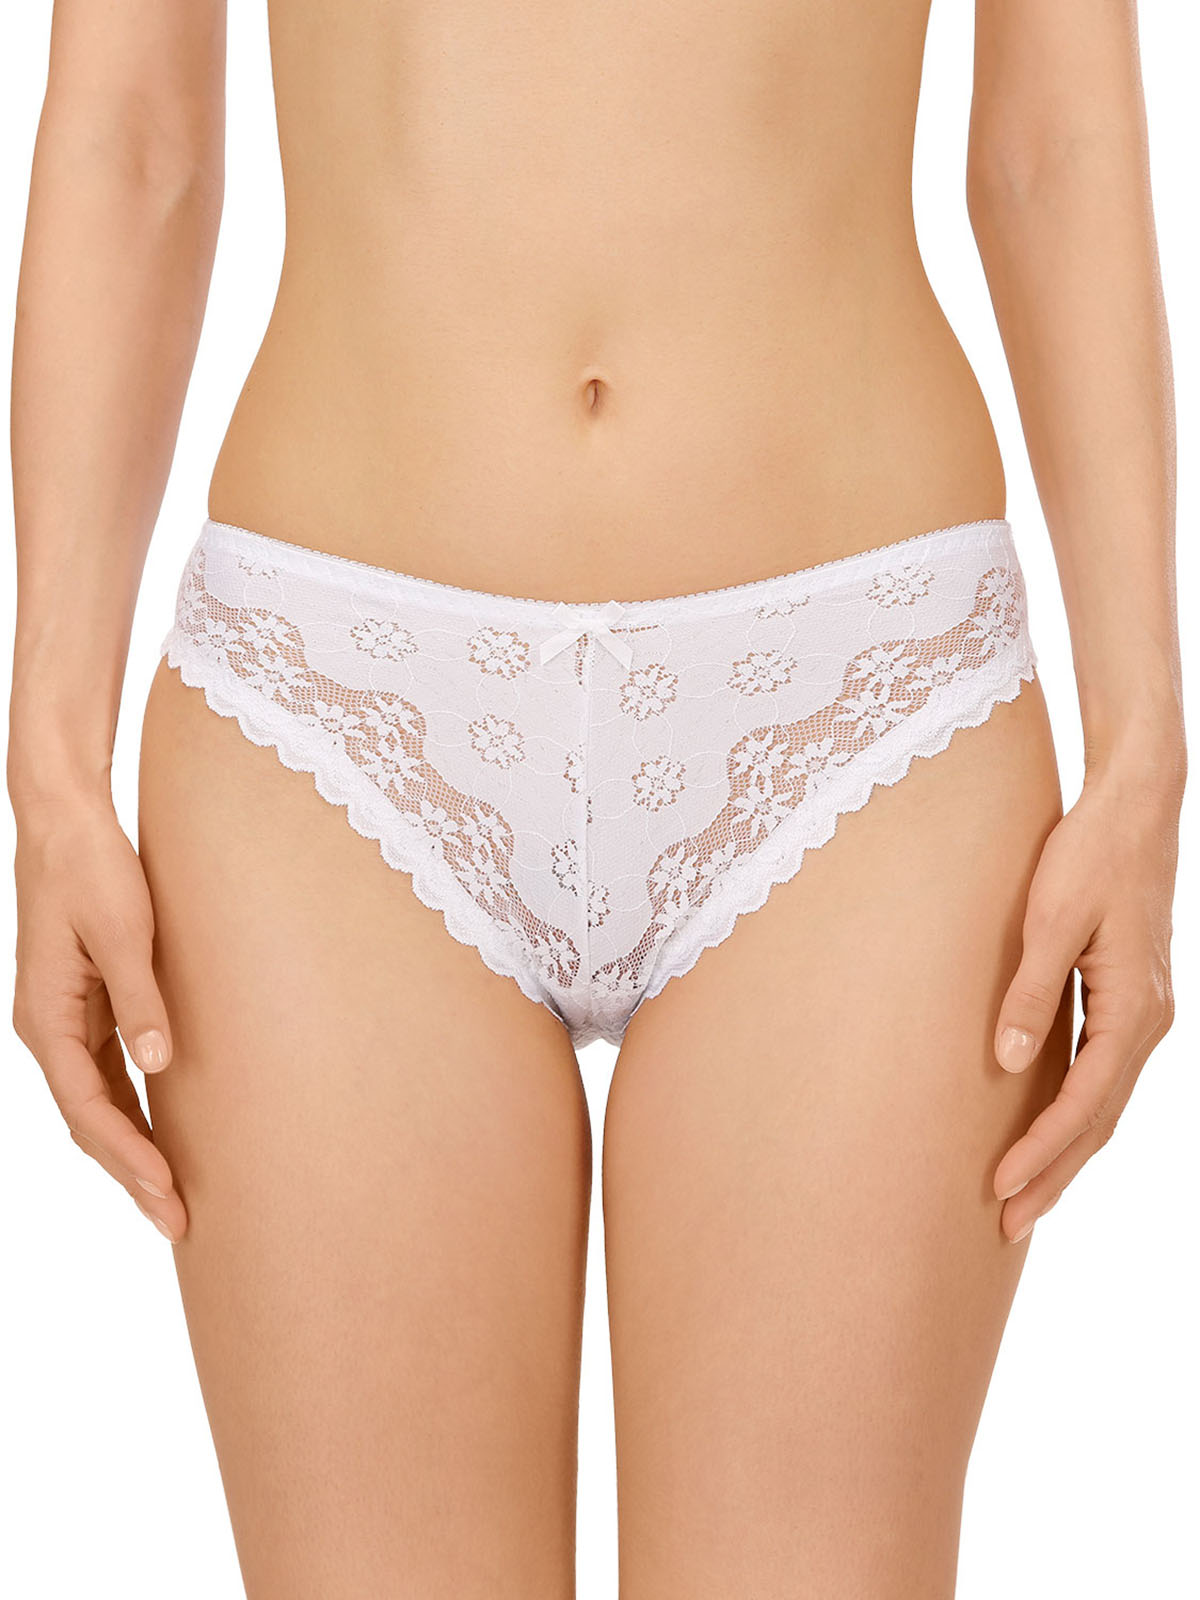 Naturana Women's Briefs 4428